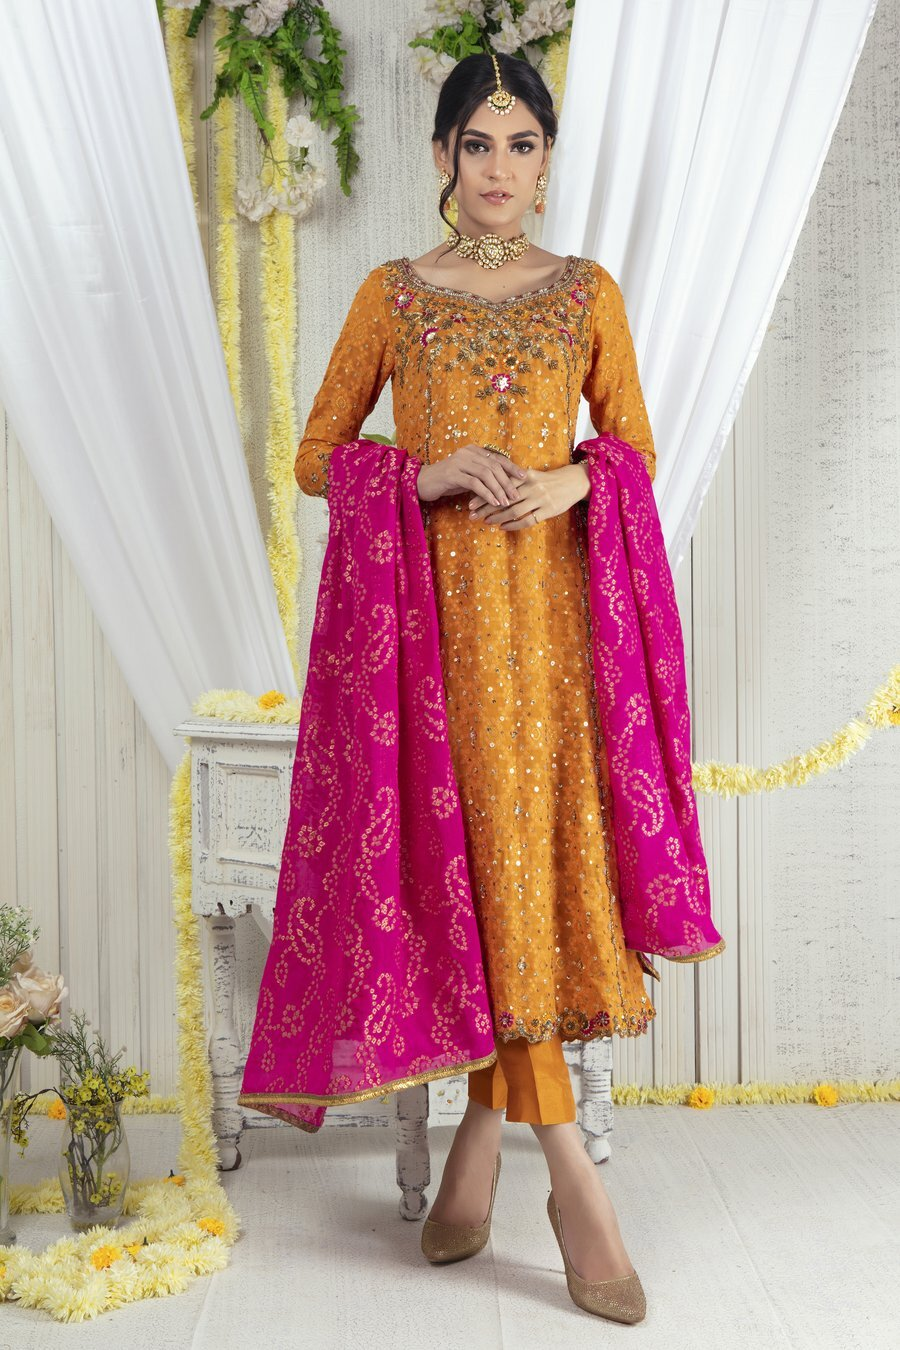 Mehndi outfit for girls